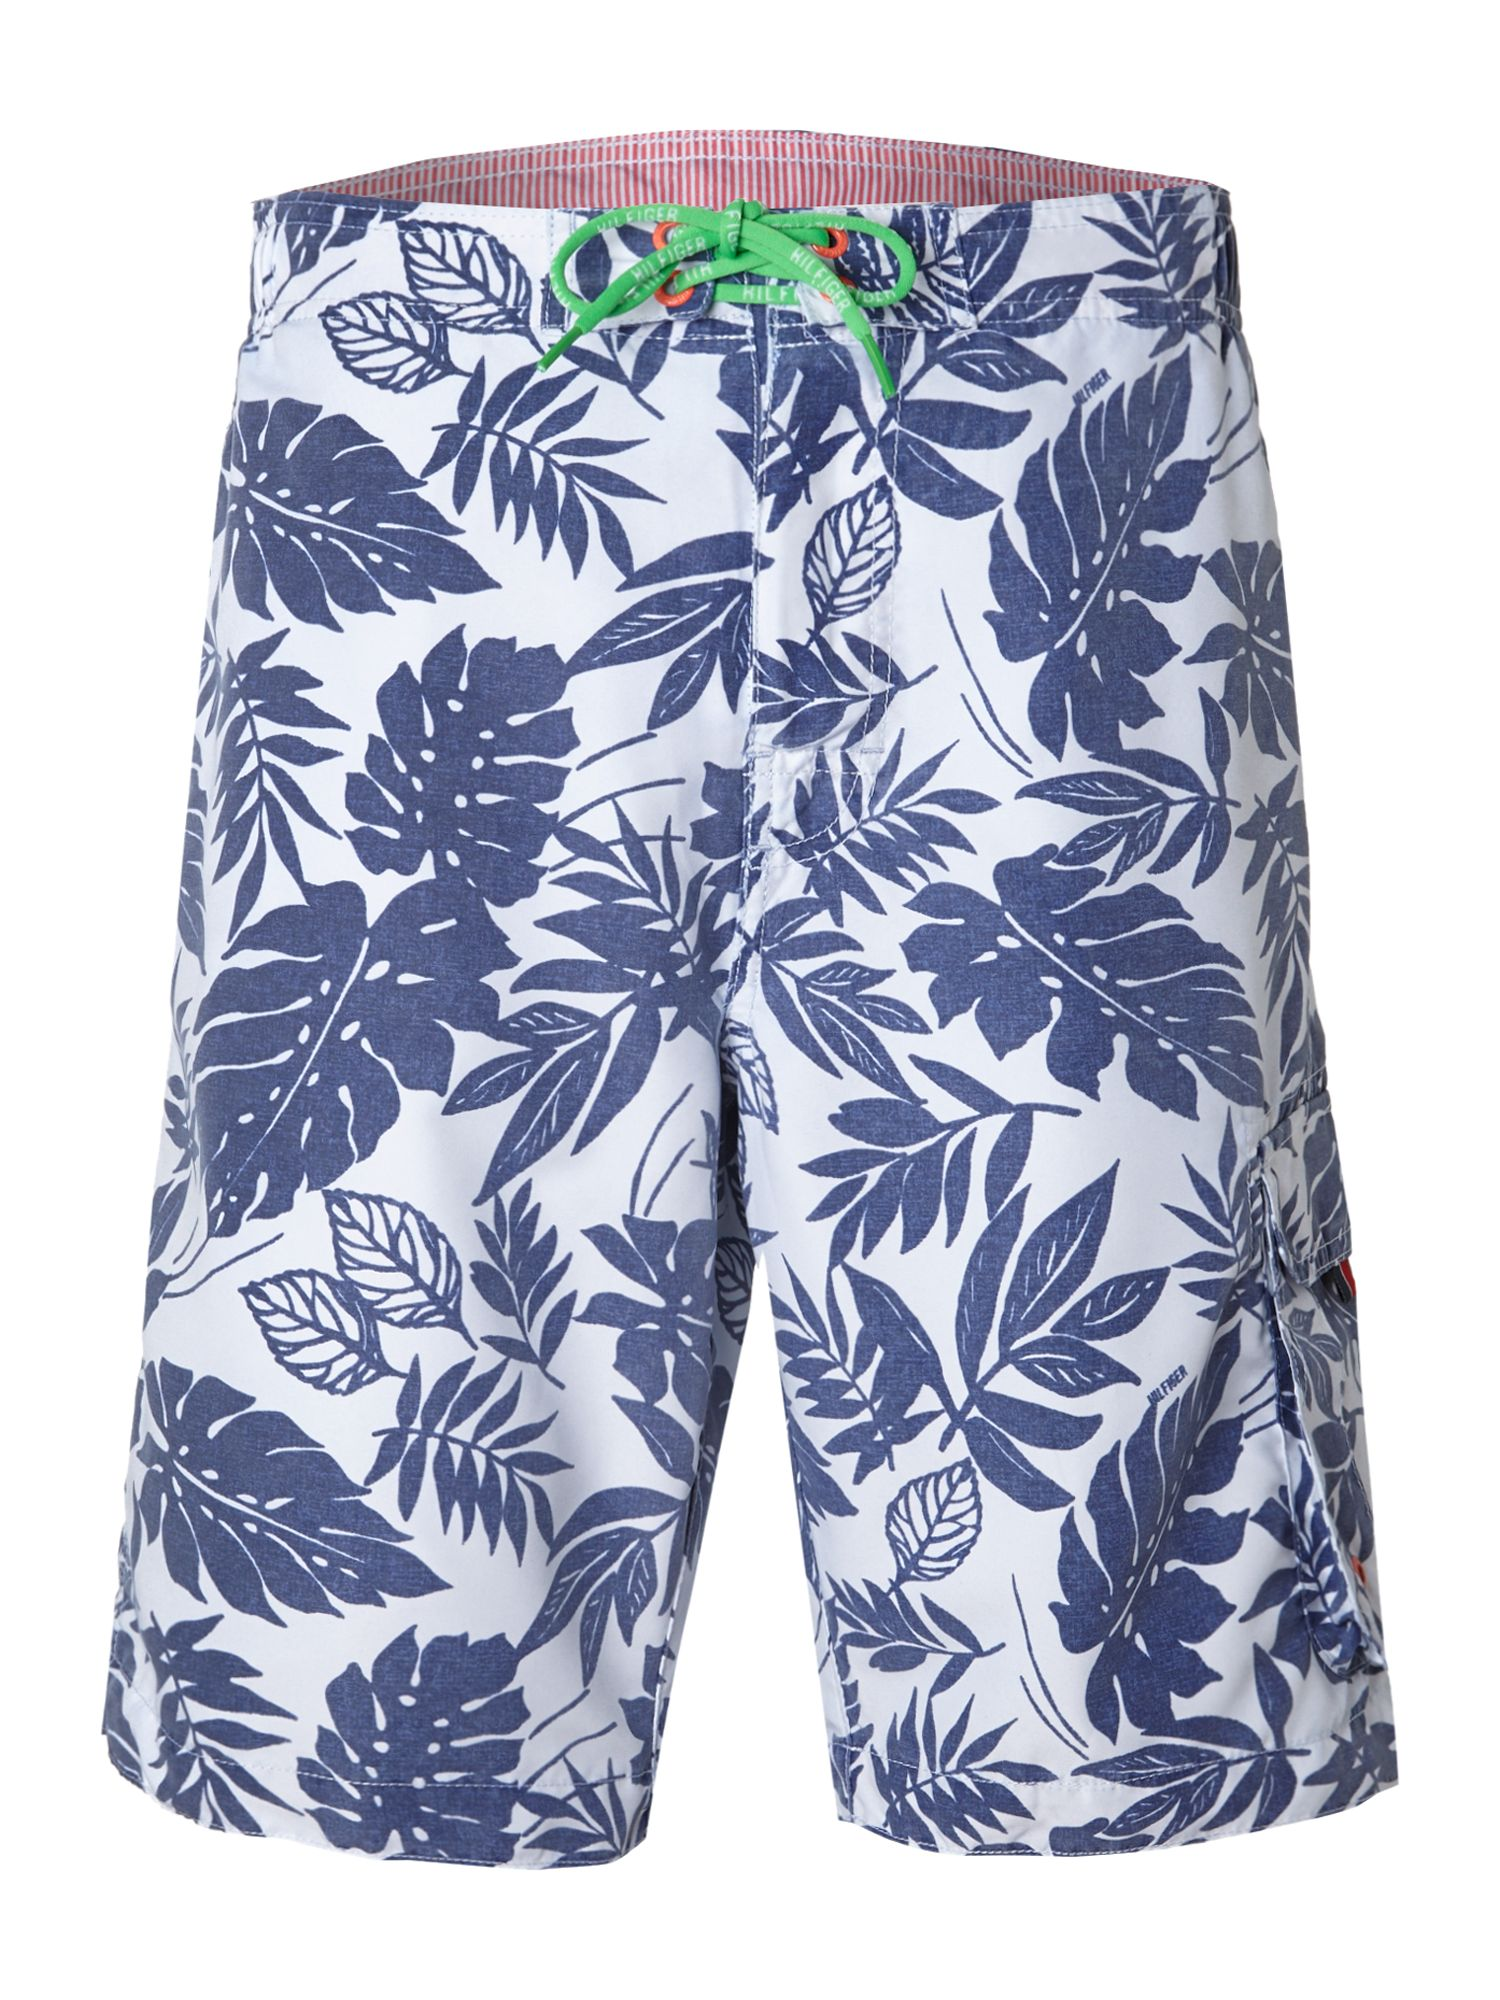 Brody leaf print swim short